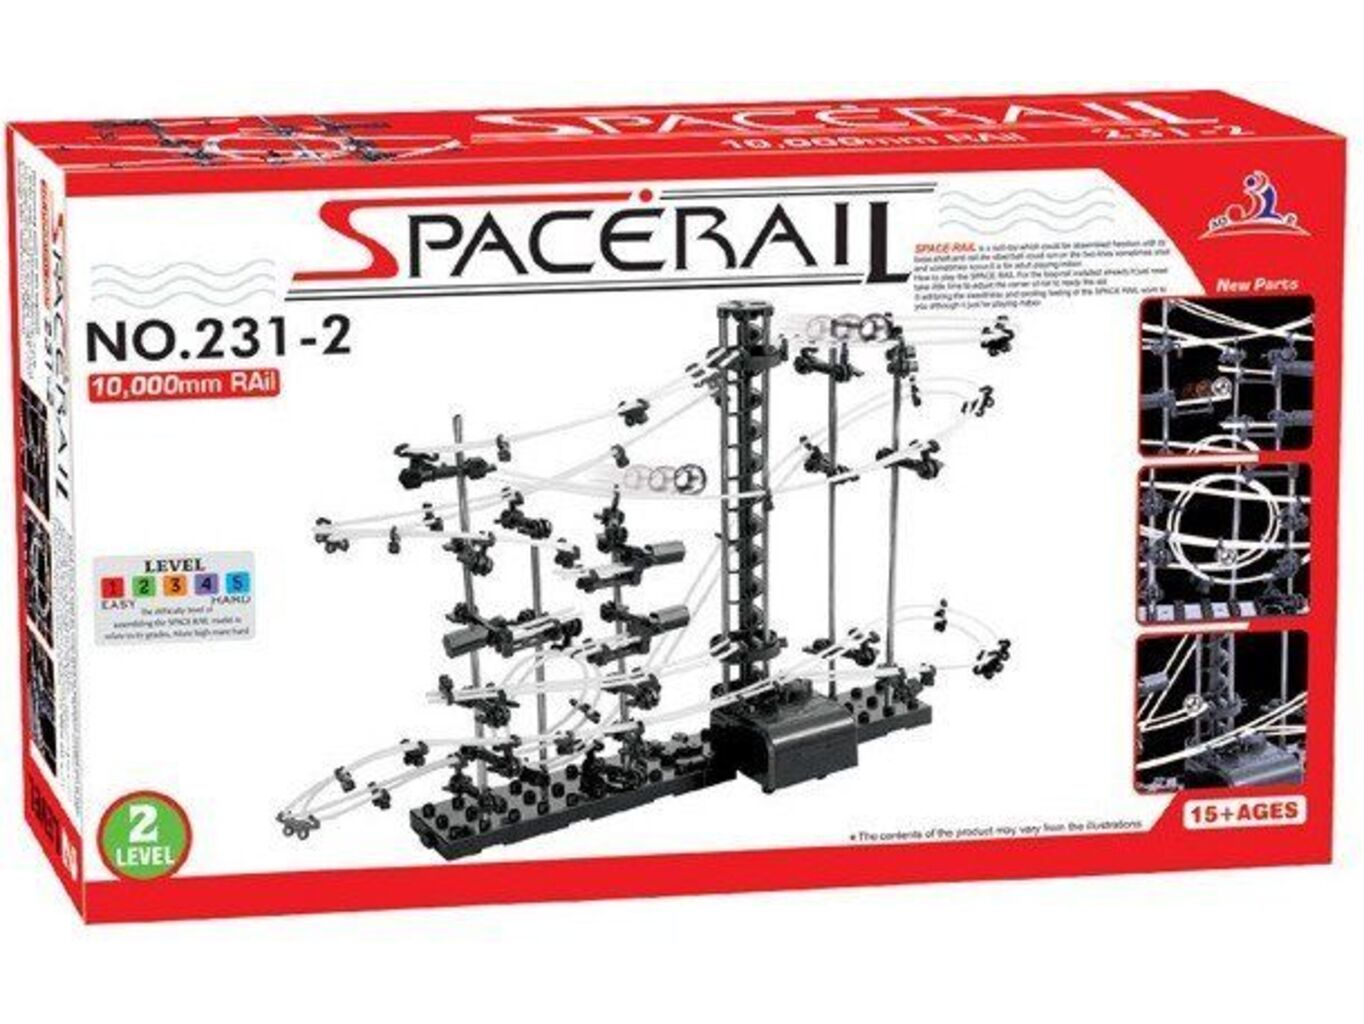 Spacerail level 2